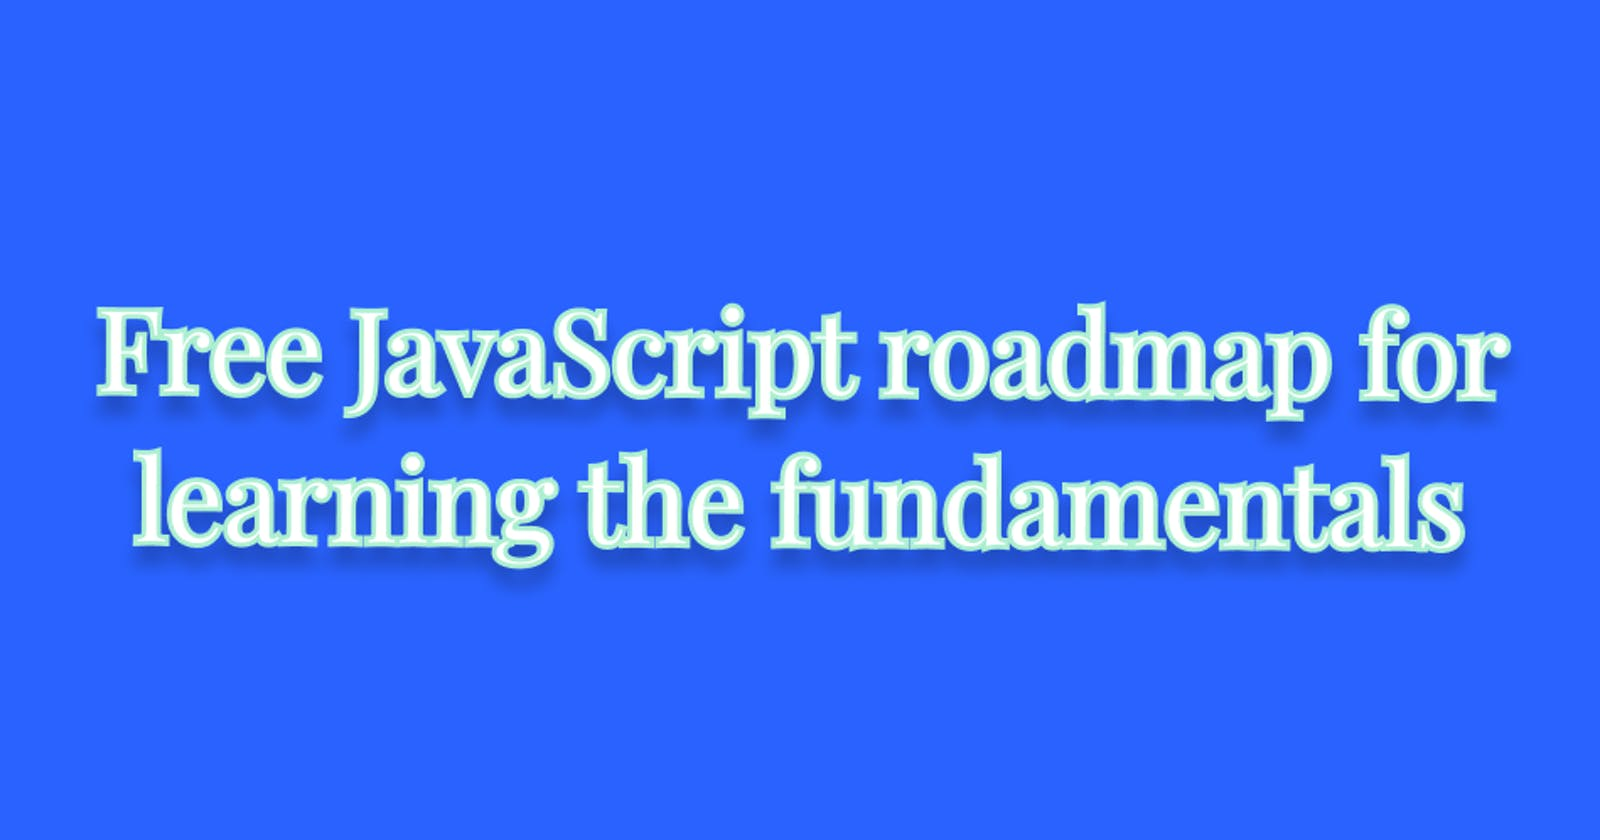 Free JavaScript roadmap for learning the fundamentals